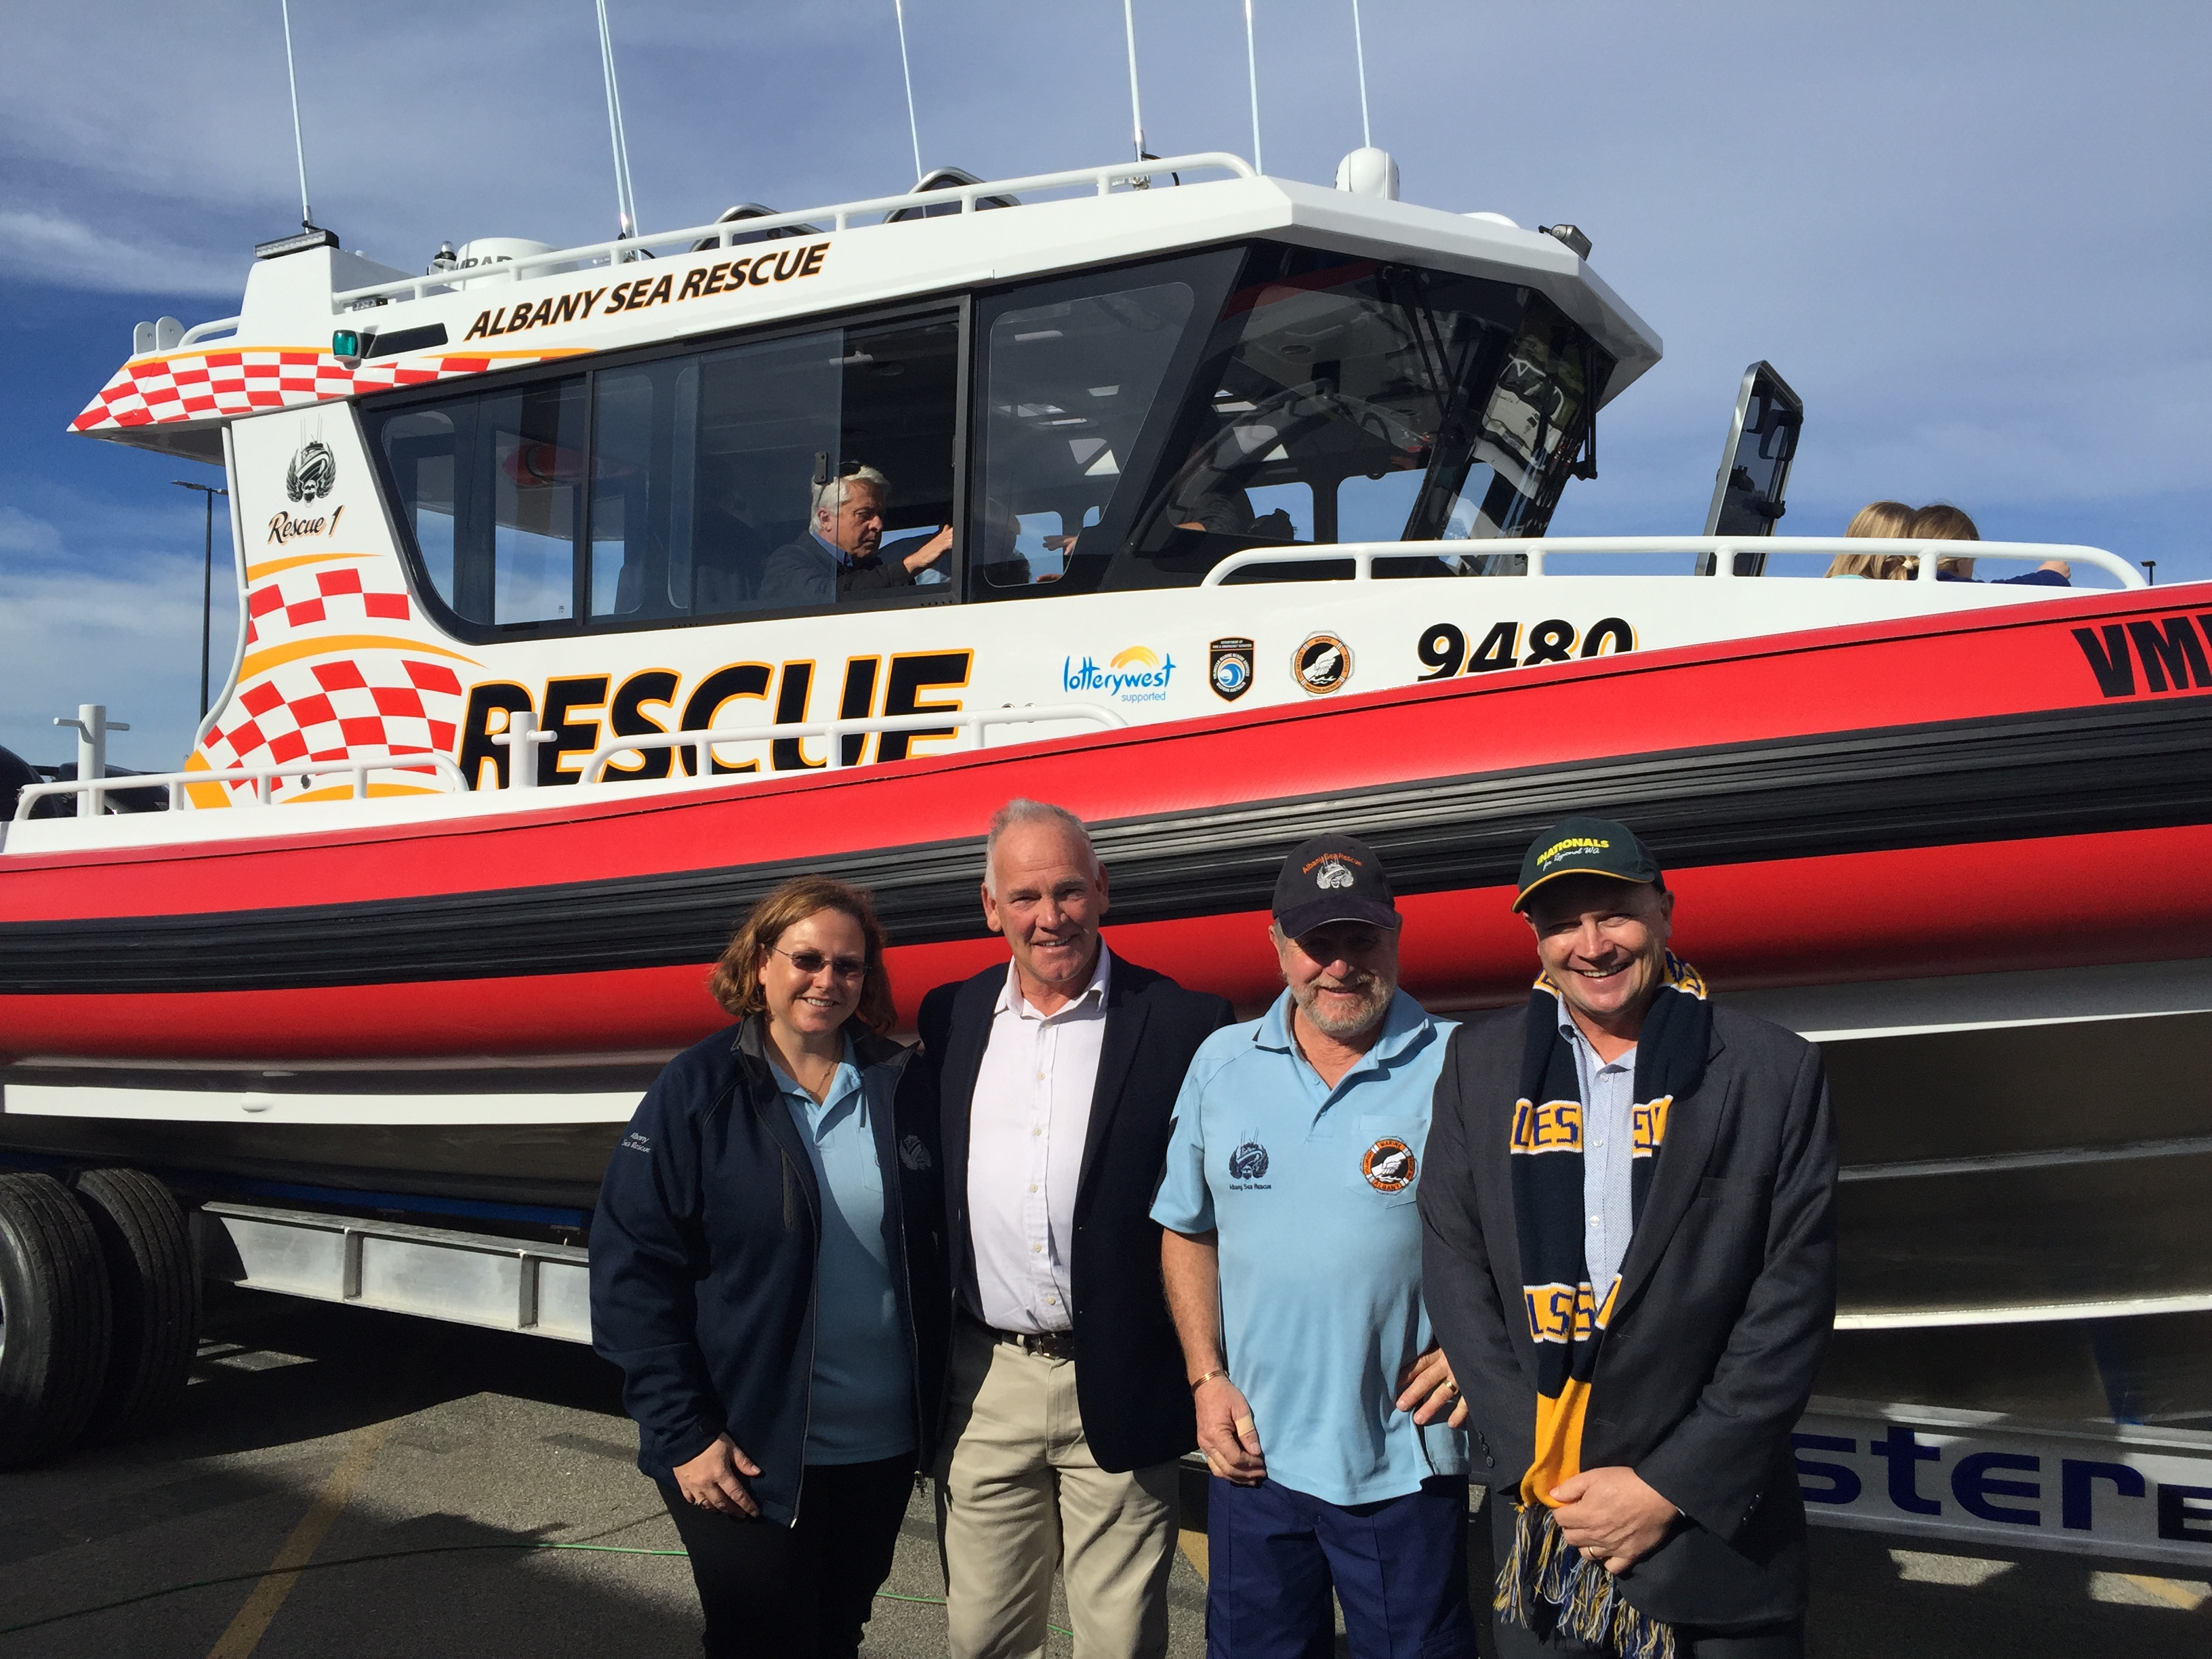 Albany_Sea_Rescue_Vessel_Launch_with_Tina_Dawson__Rob_Sutton__Chris_Johns_and_Col_Holt.jpg